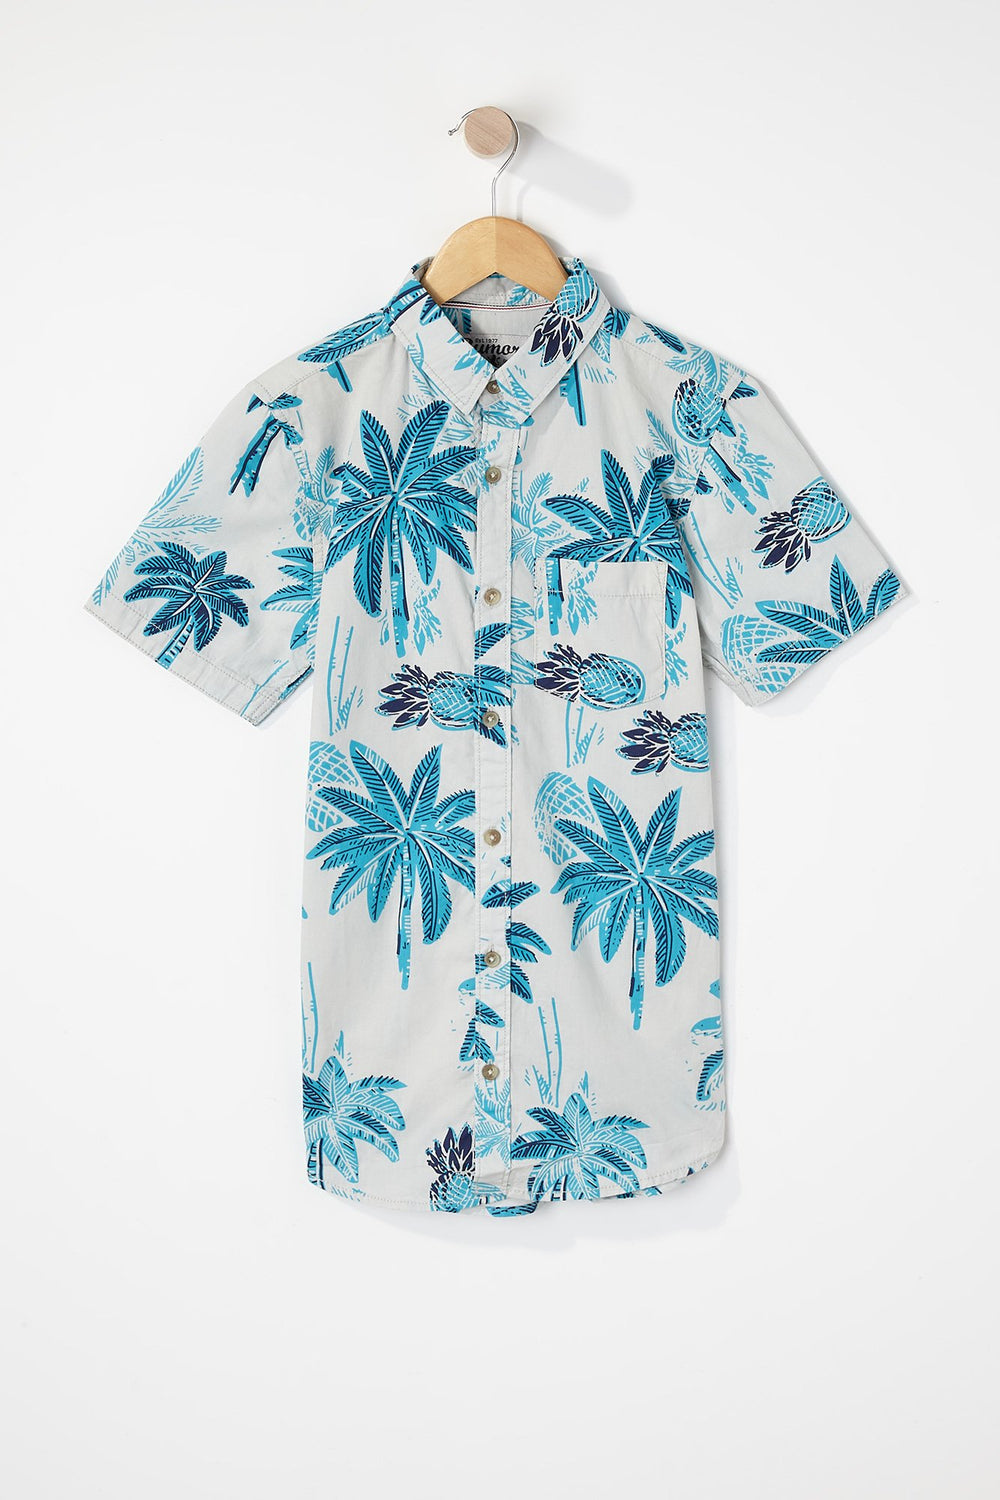 West49 Boys Floral Button-Up Teal